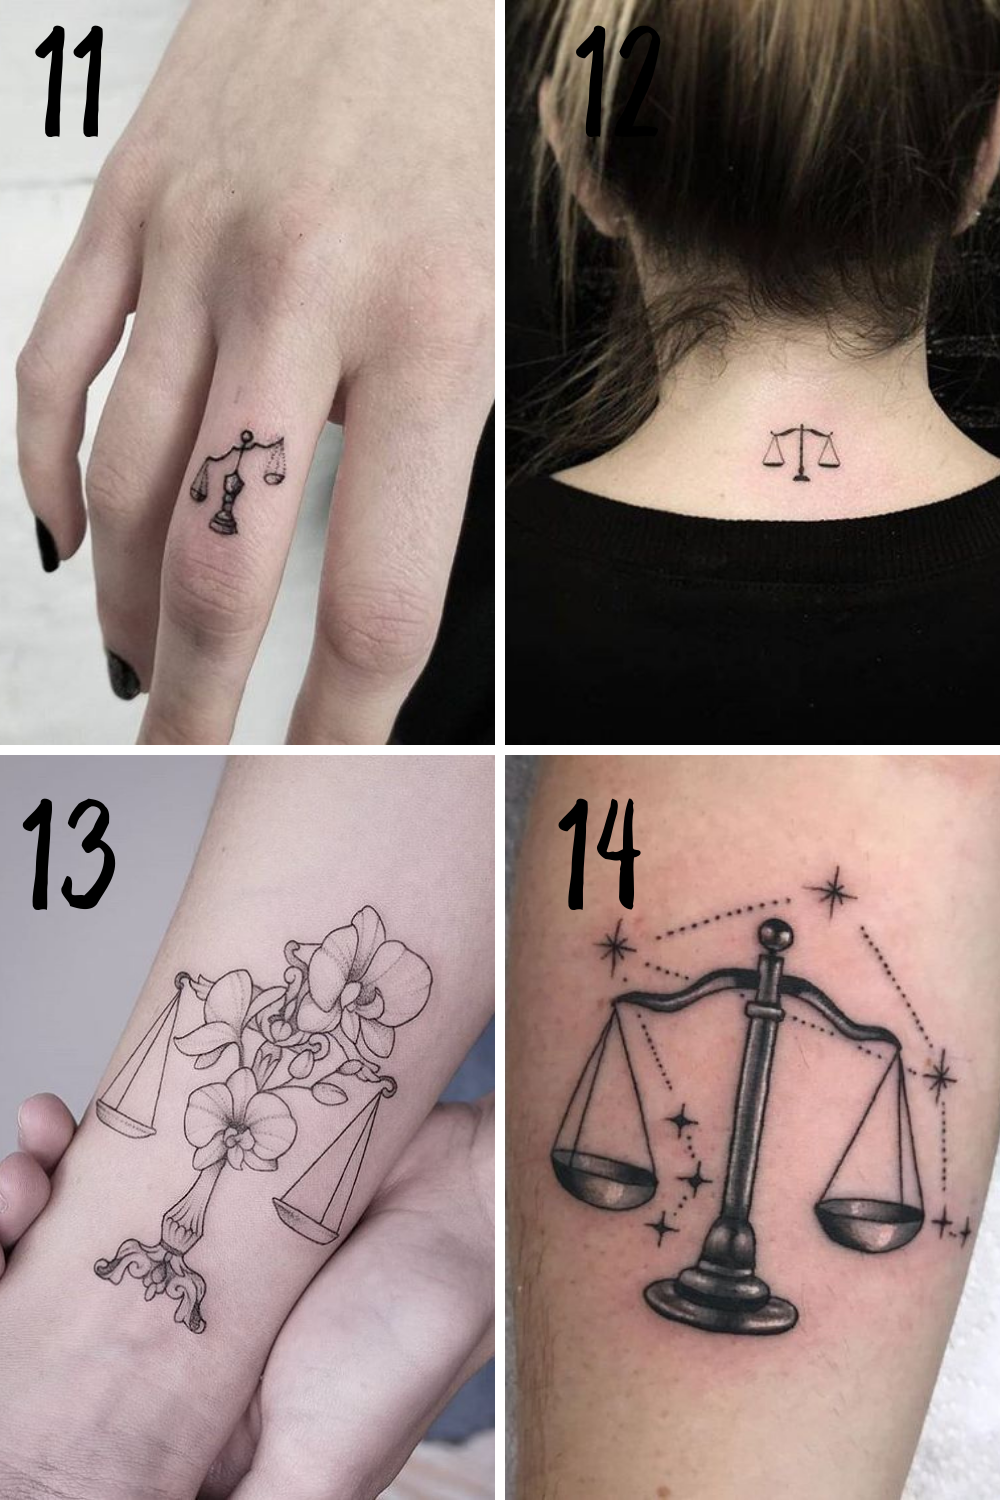 Scale tattoo